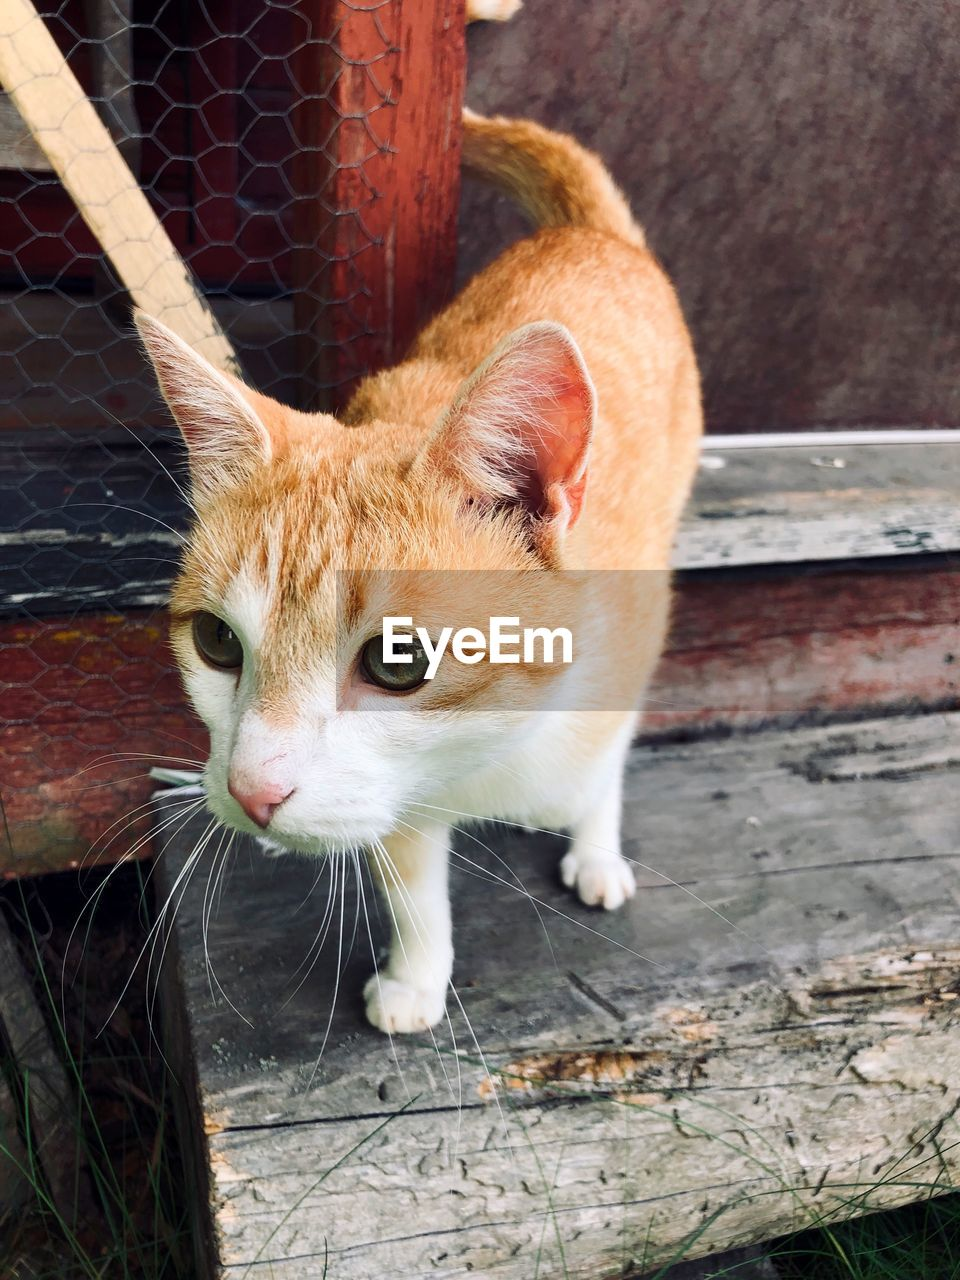 mammal, one animal, animal themes, pets, domestic, animal, domestic animals, cat, feline, domestic cat, vertebrate, whisker, day, no people, close-up, looking at camera, high angle view, looking, portrait, outdoors, animal head, ginger cat, wheel